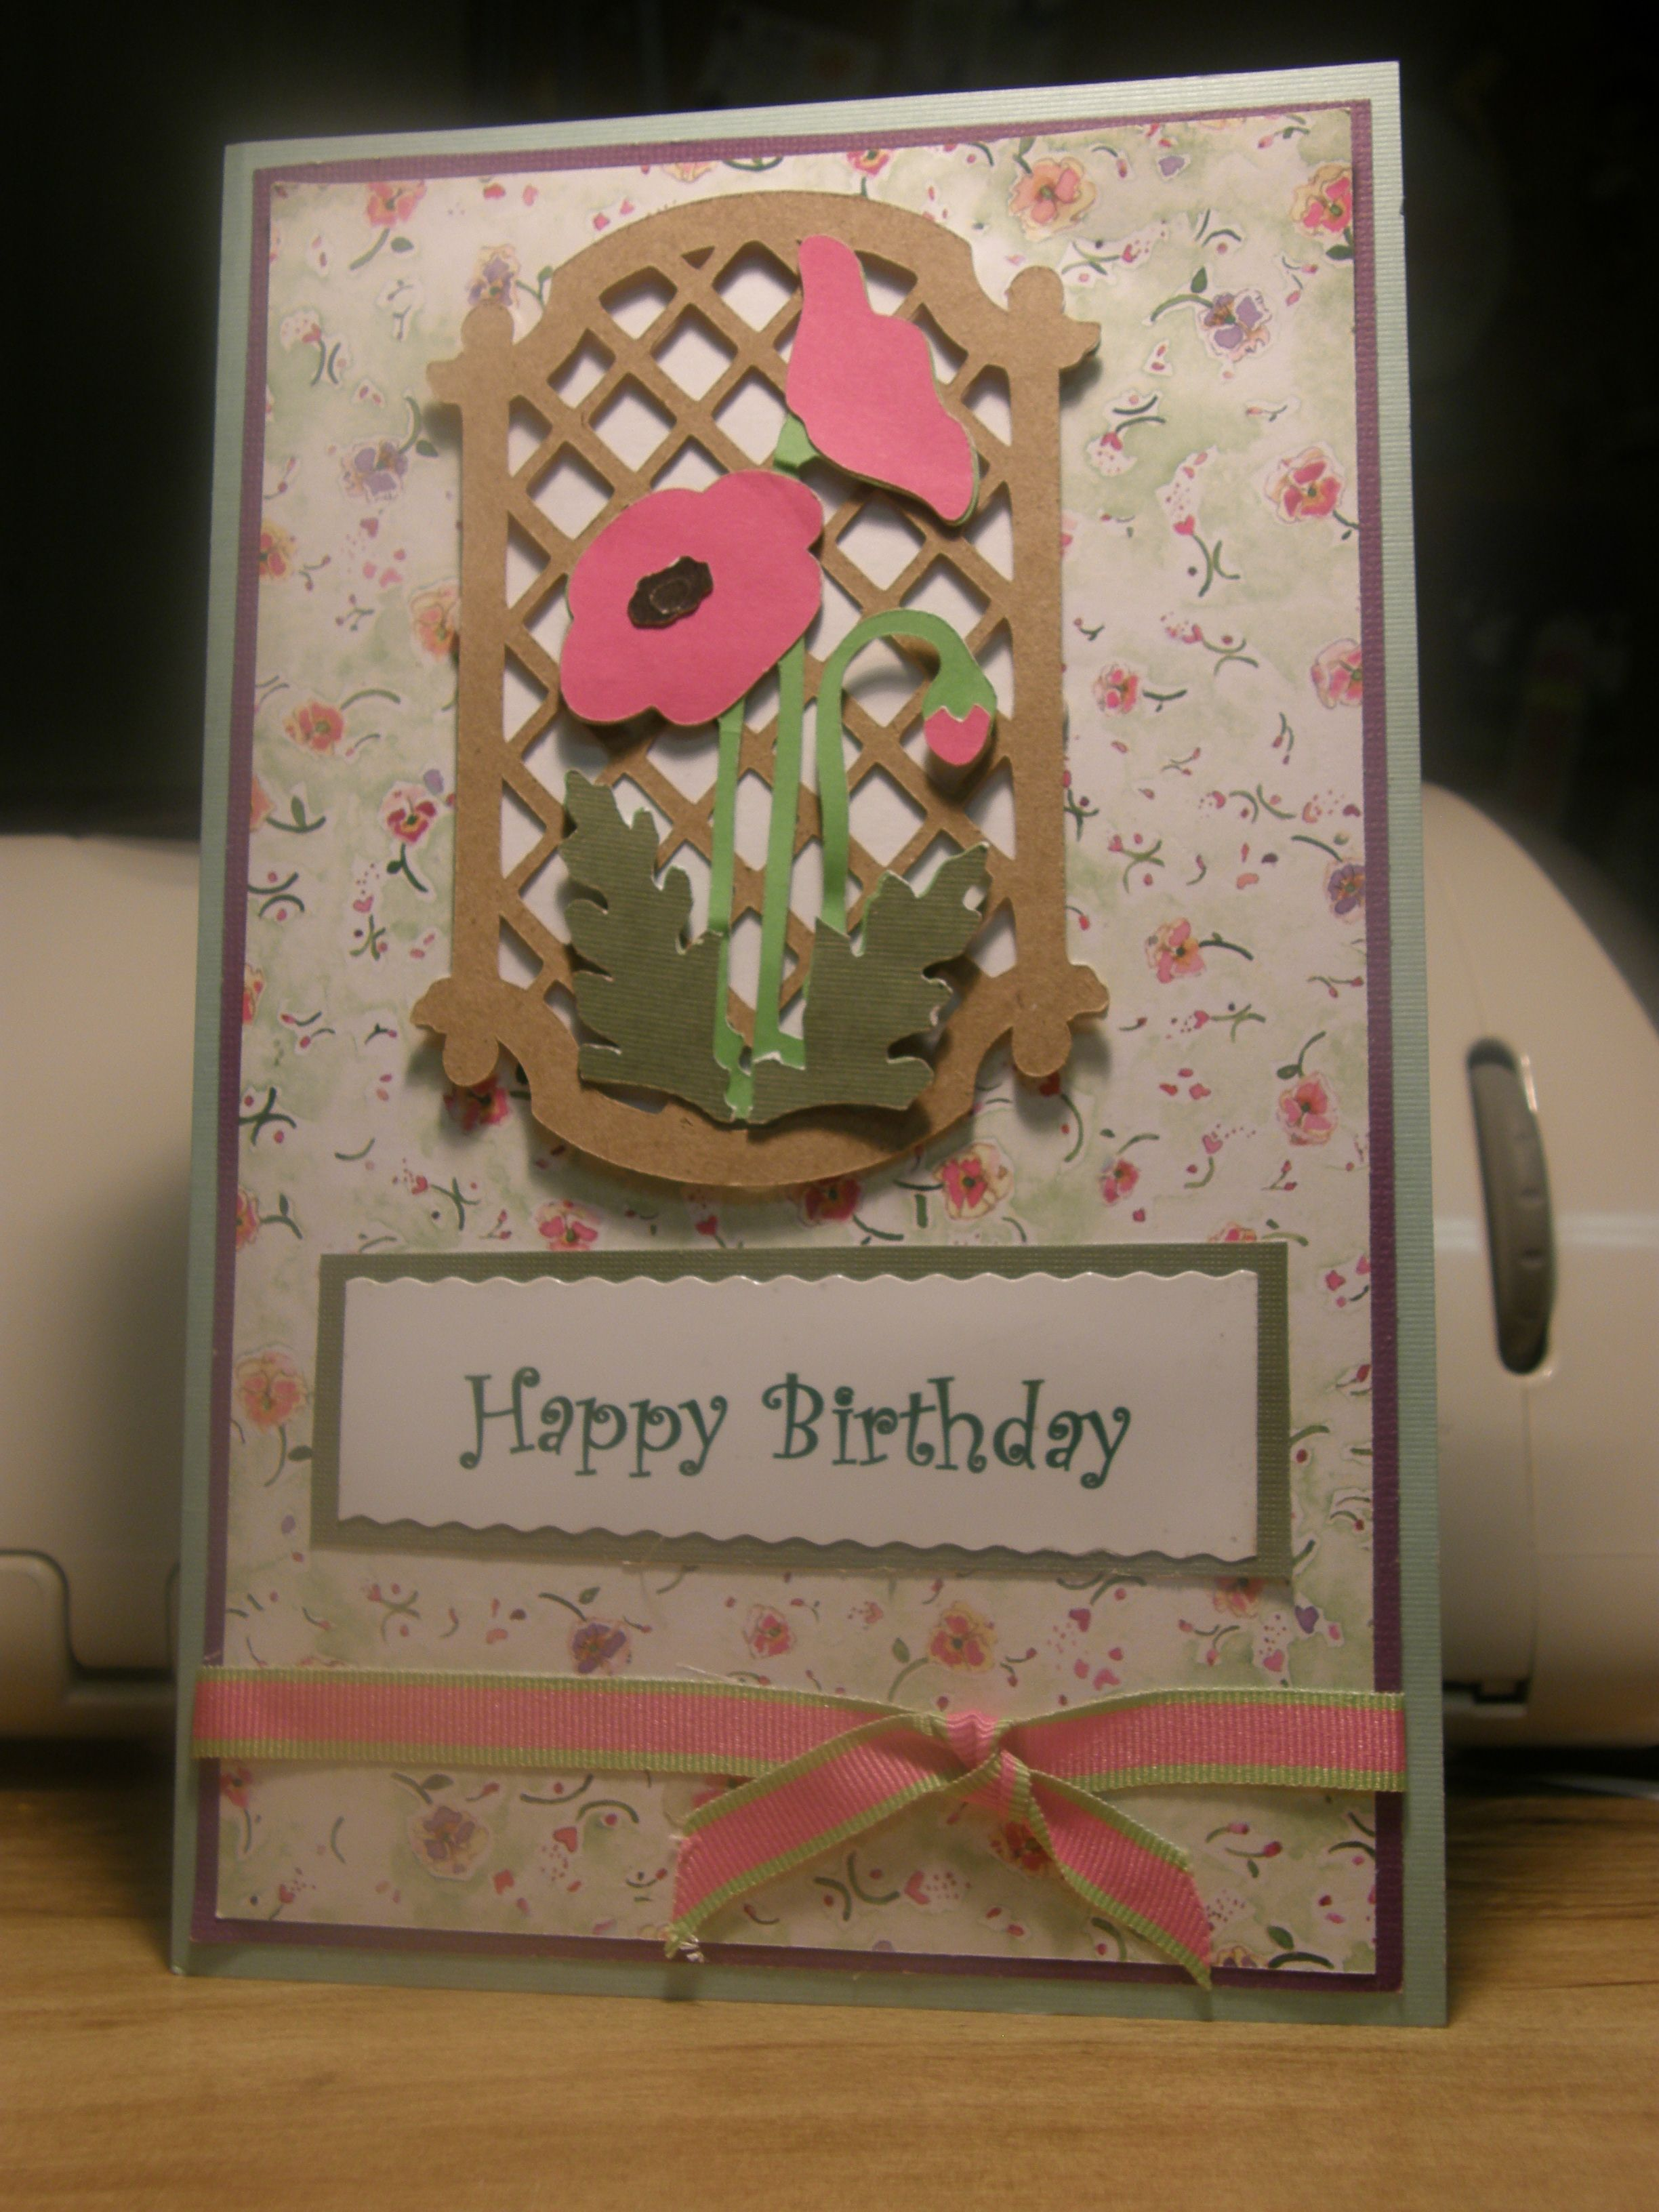 Marvelous Card Making Ideas With Cricut Part - 7: A Birthday Card Made From Creative Card Cricut Cartridge For A Friend.